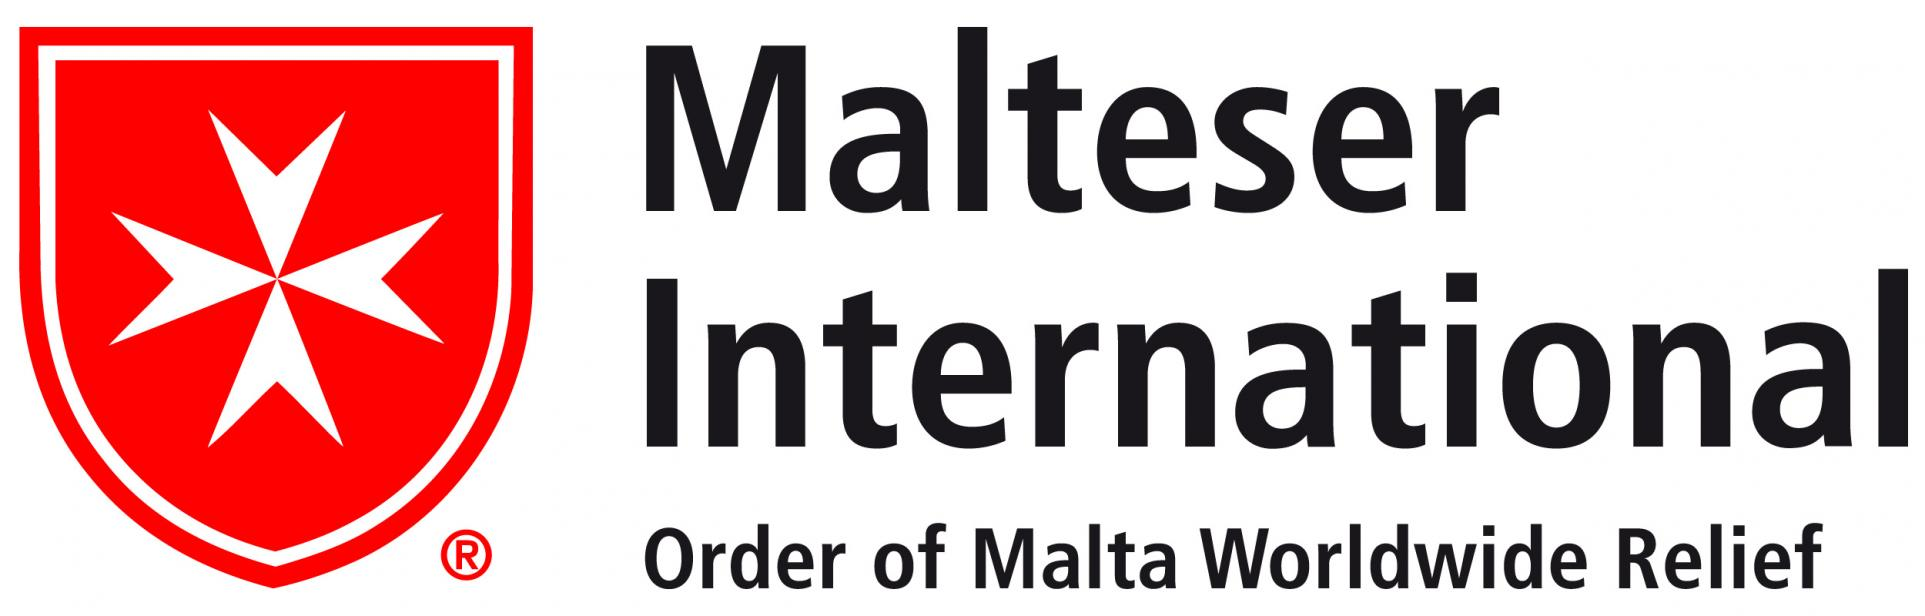 Malteser International Americas